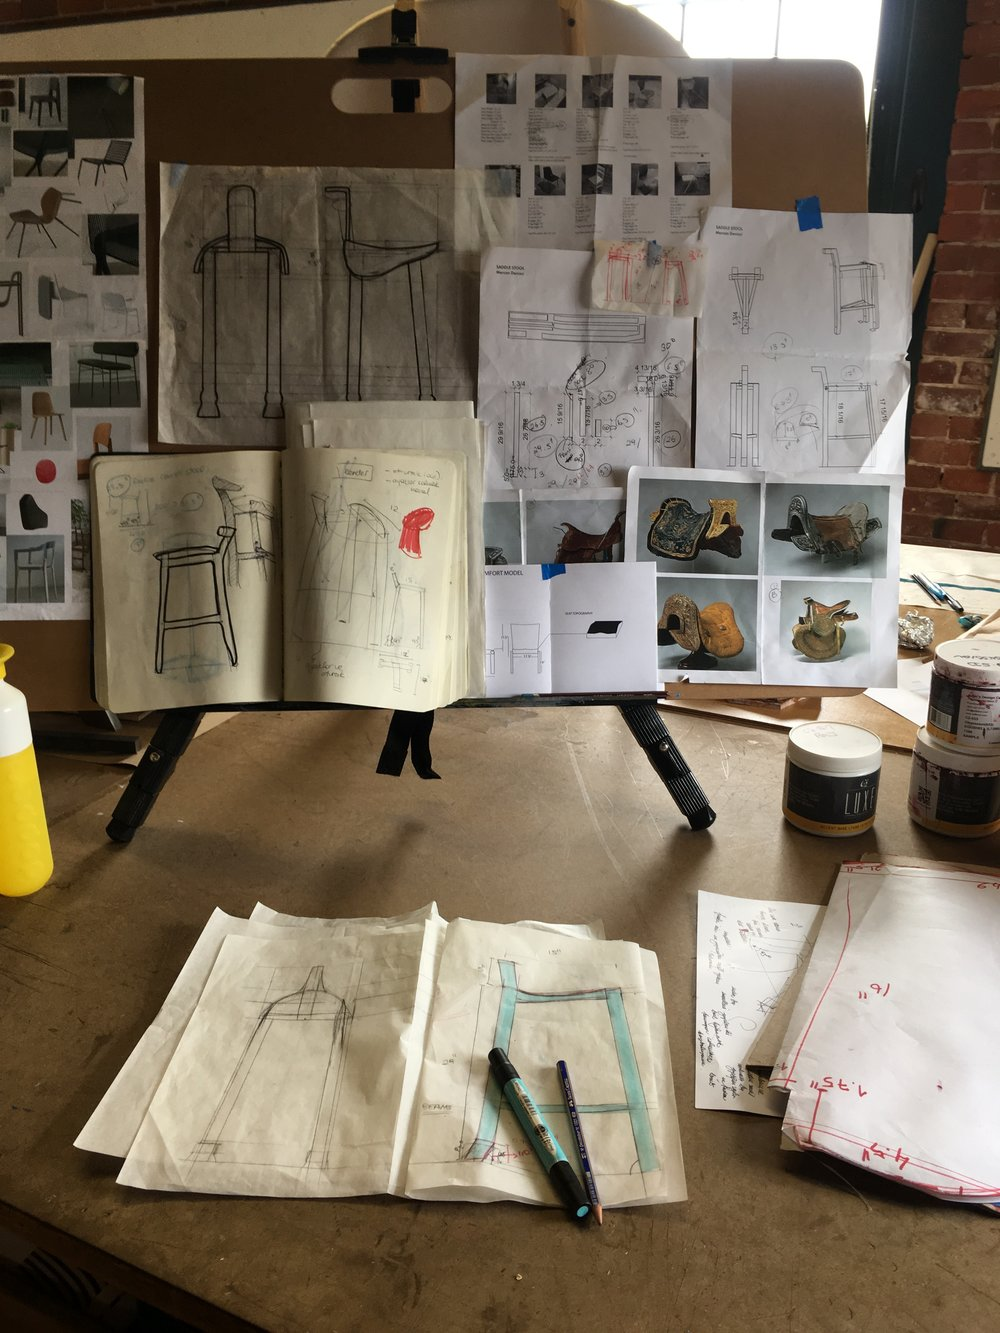 Desk, inspiration boards, sketches and drafts can be seen here.